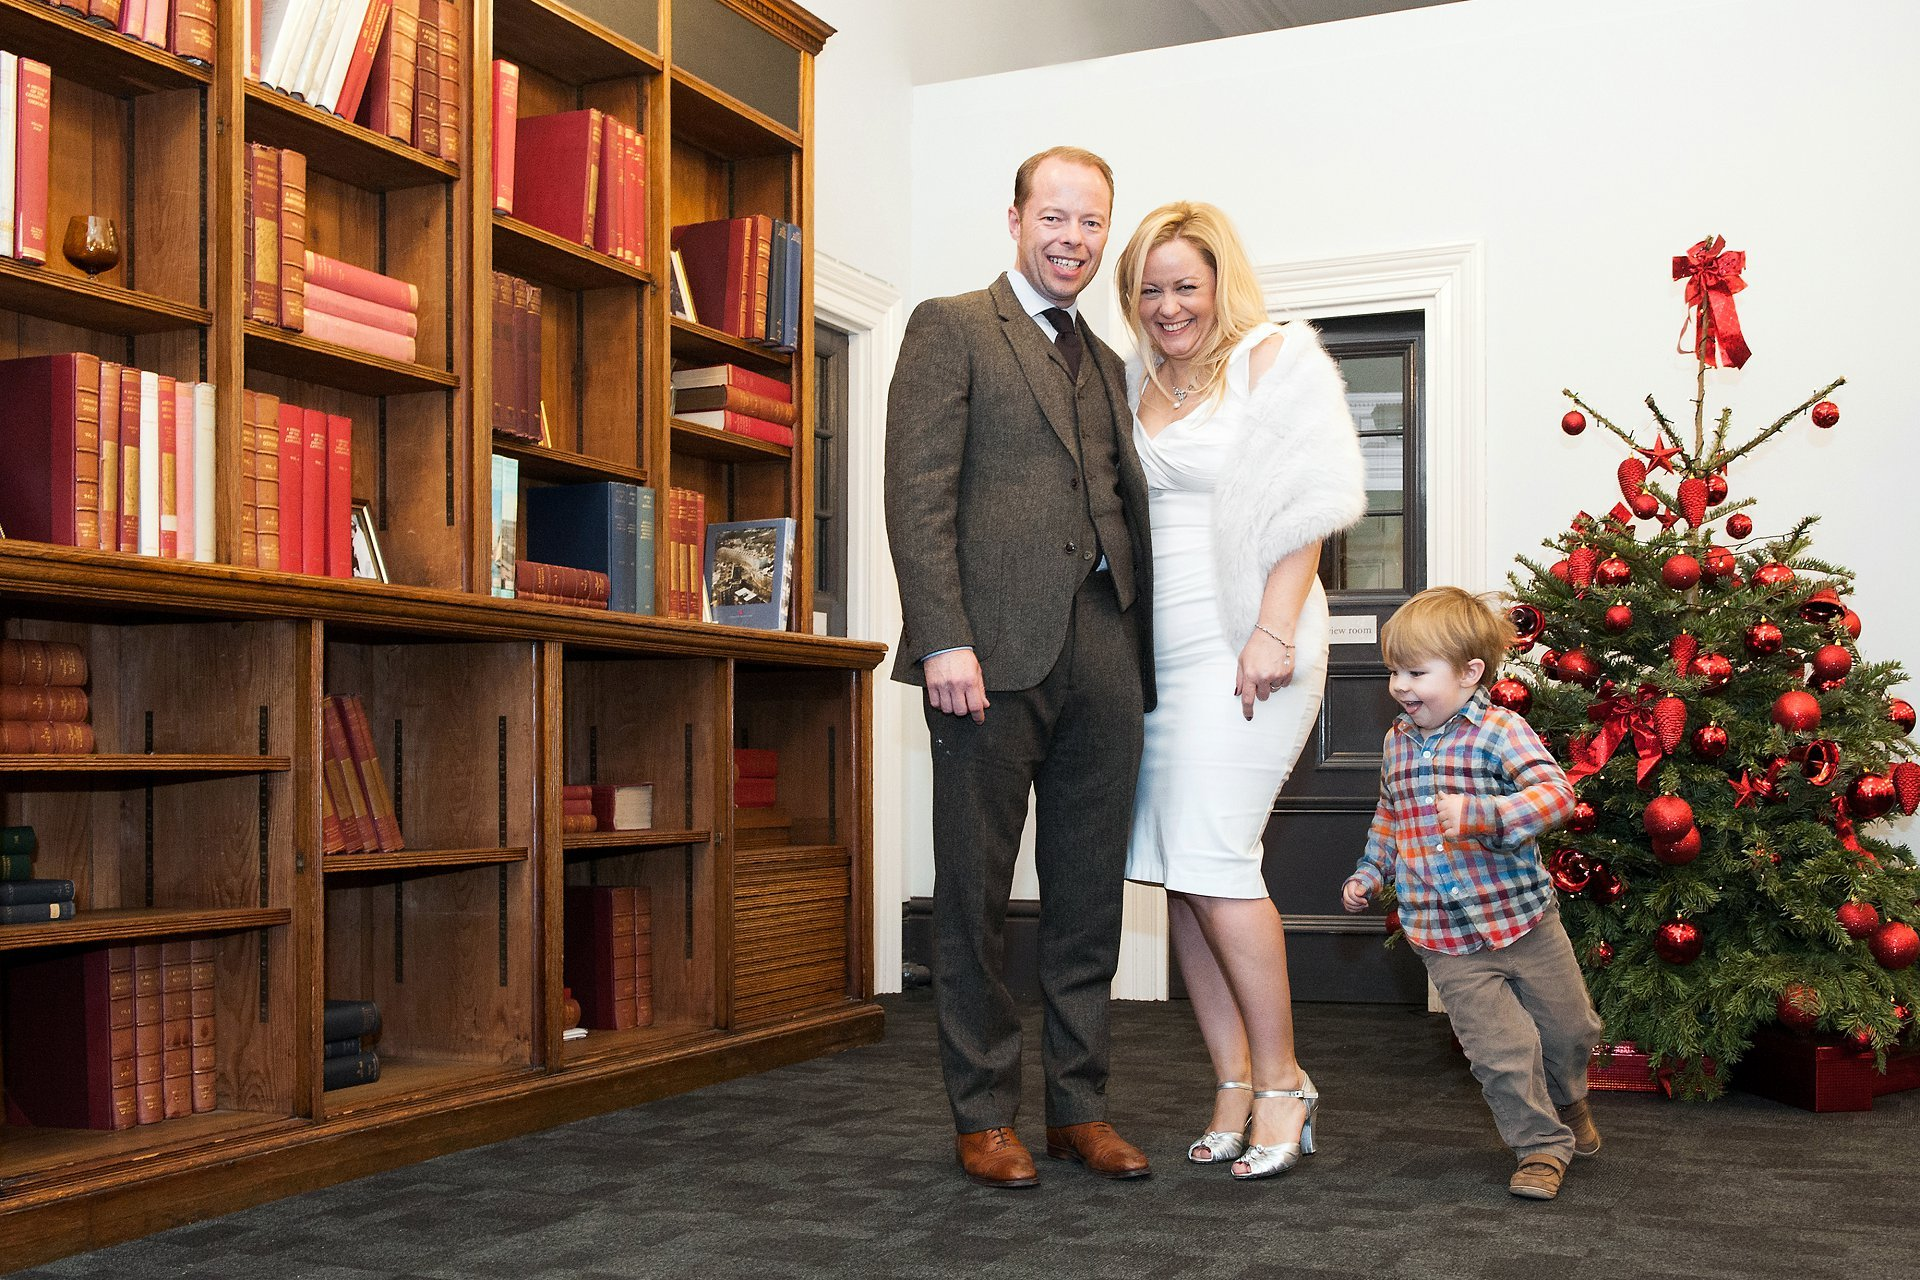 Westminster Register Office Christmas wedding showing a bride and groom and their small son running around them in the Mayfair Room at Mayfair Library next to a decorated Christmas tree (photo Emma Duggan Photography)